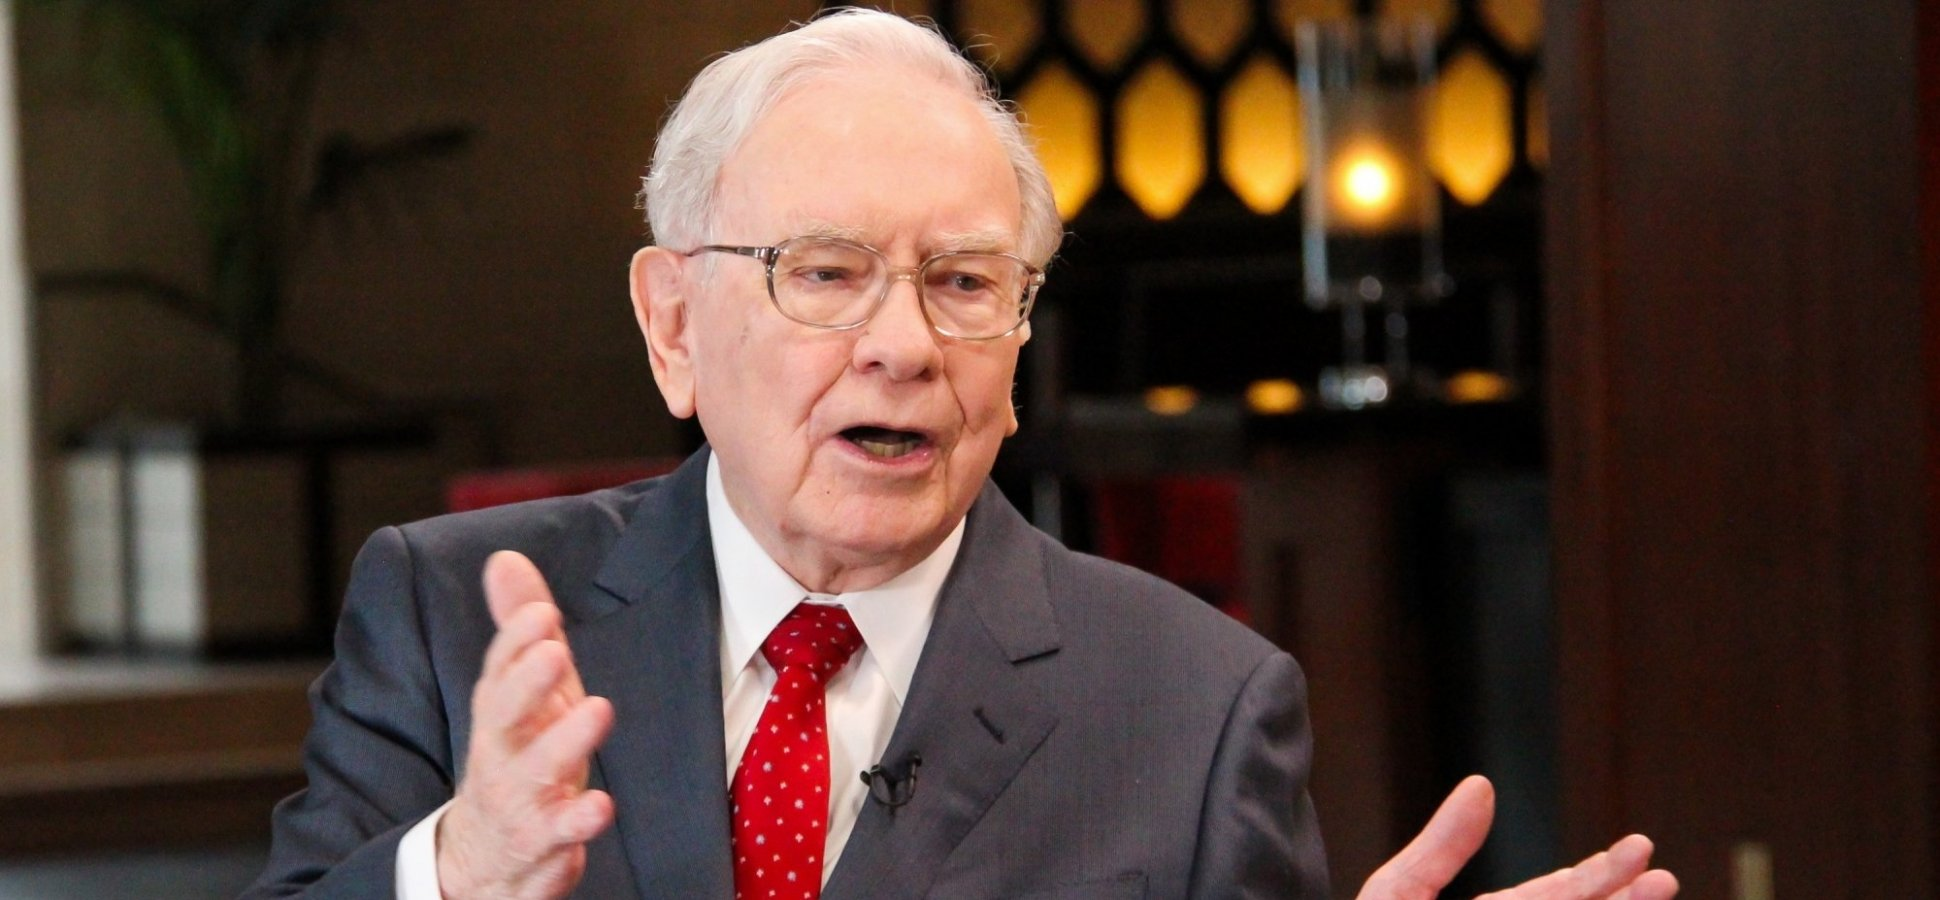 Warren Buffett Says You'll Be a Wreck if You Don't Take Care of Your Mind and Body. Here Are 6 Masterful Ways to Do It